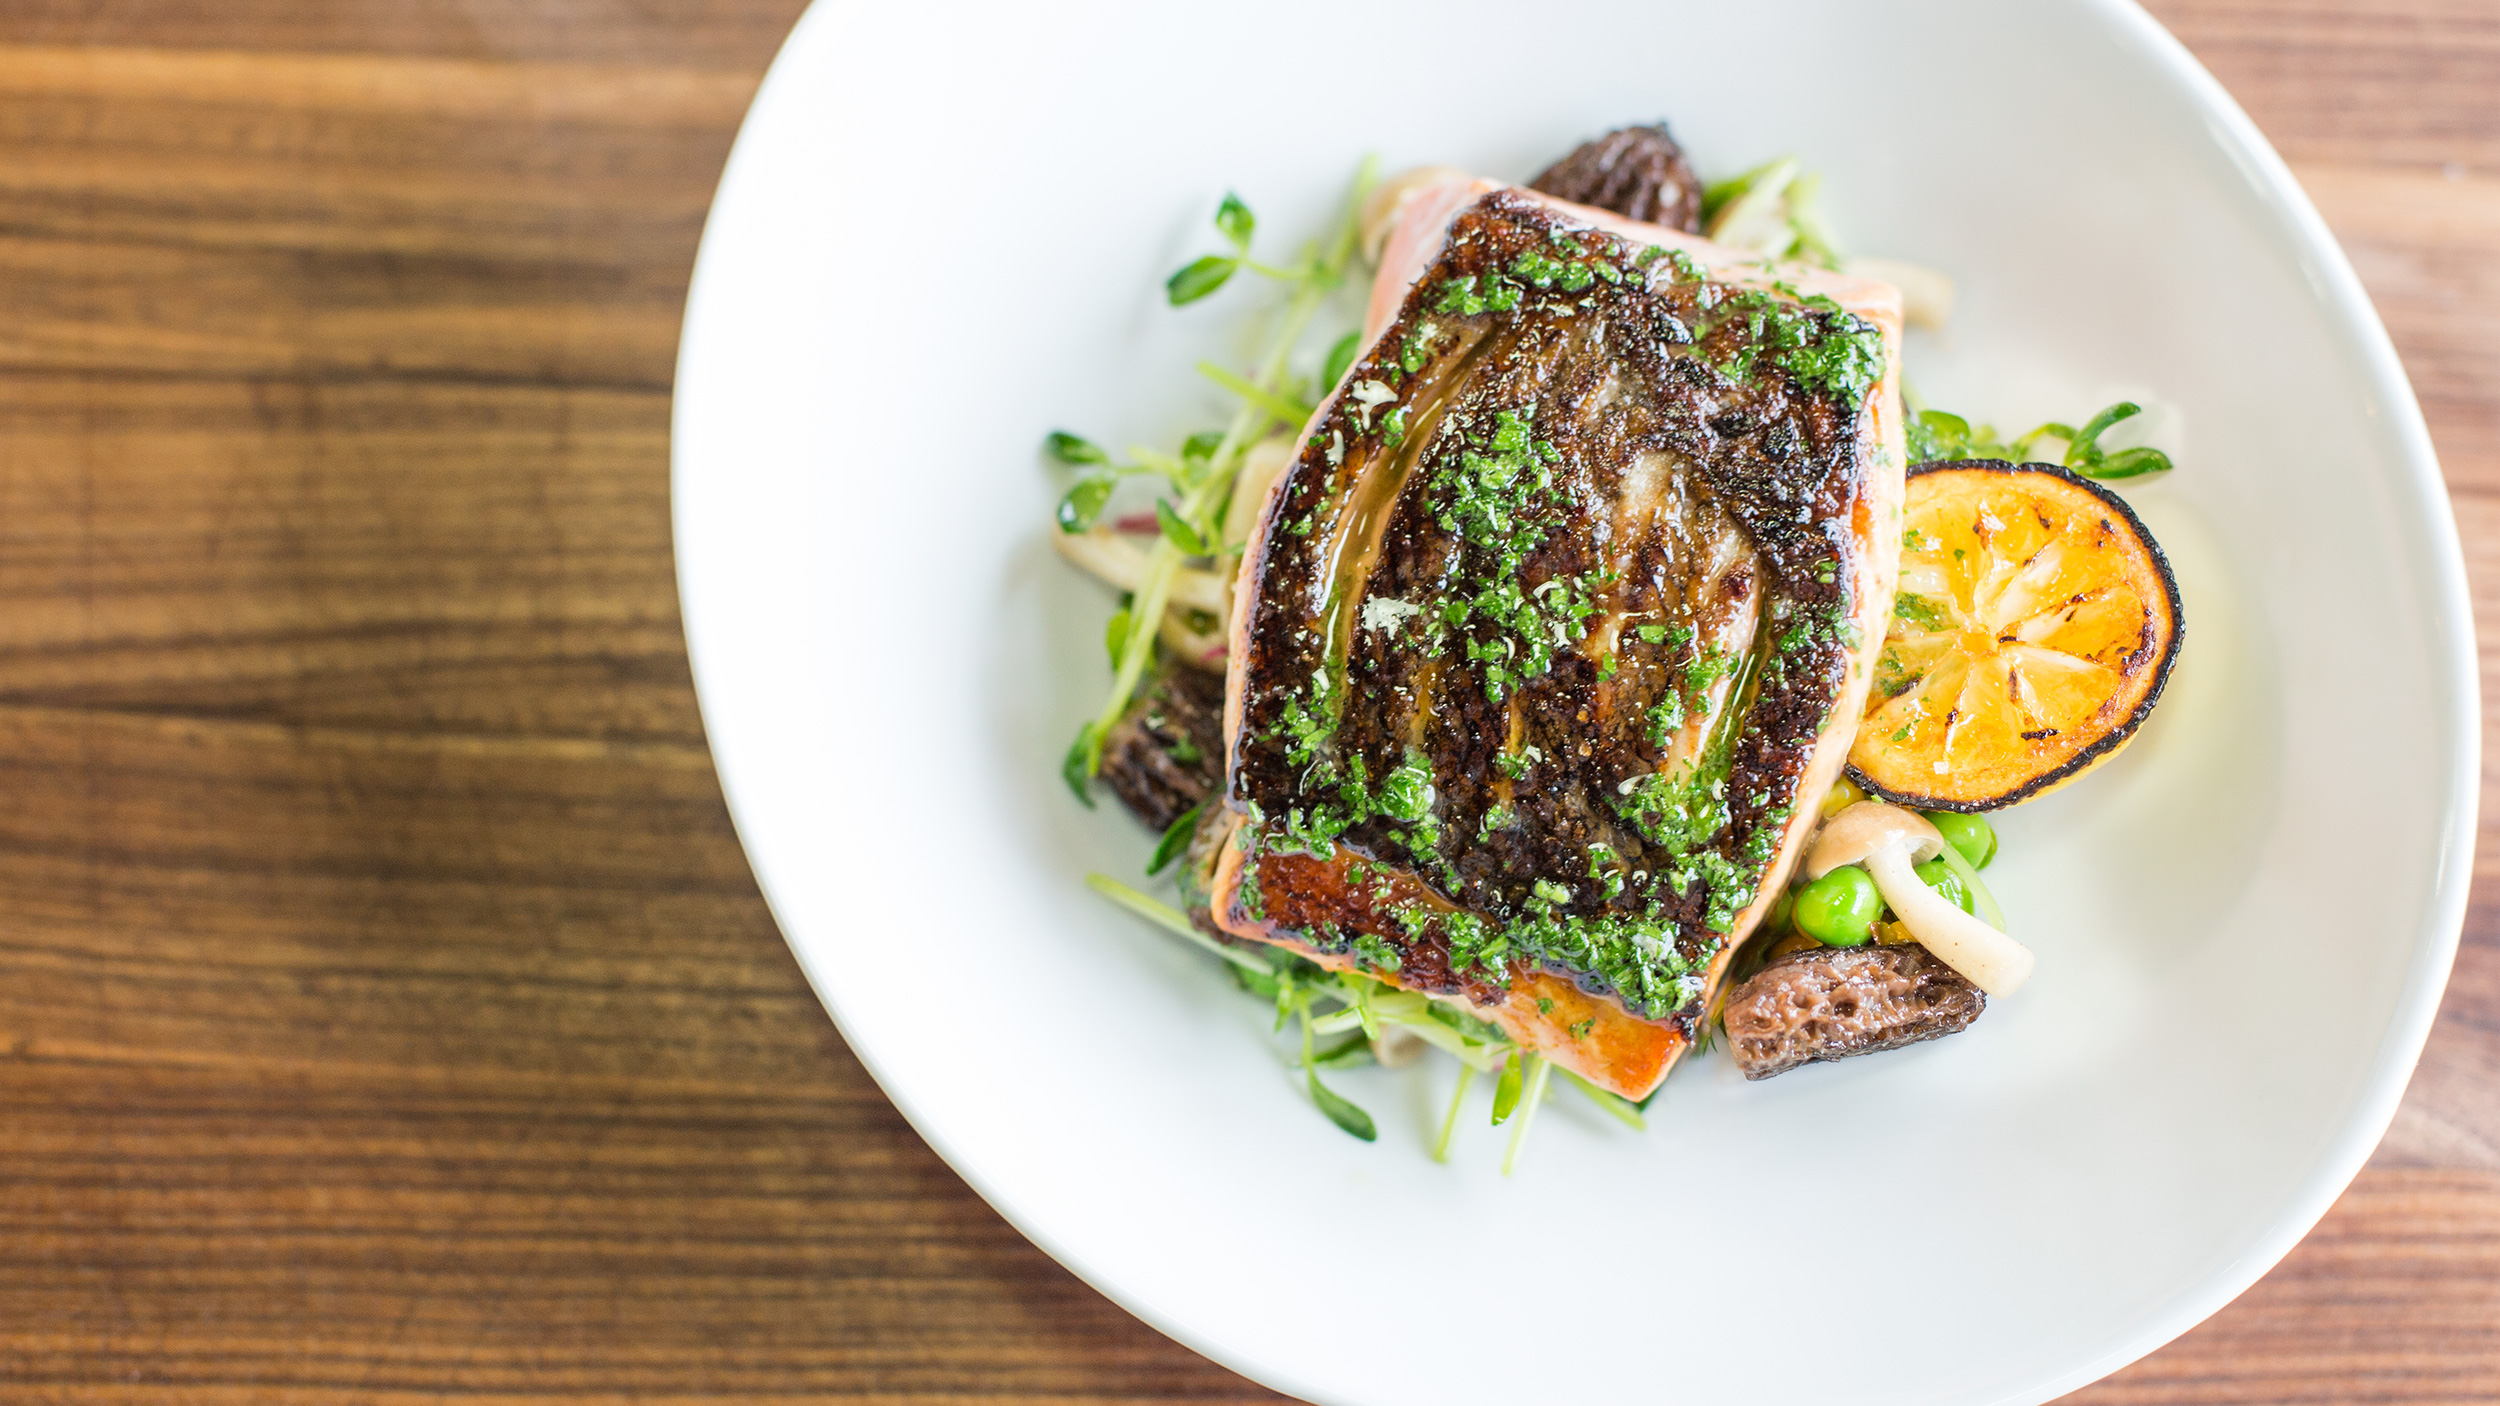 Perfect Salmon With Herb Oil And A Mushroom Brussels Sprouts Salad Sous Vide Recipe Chefsteps